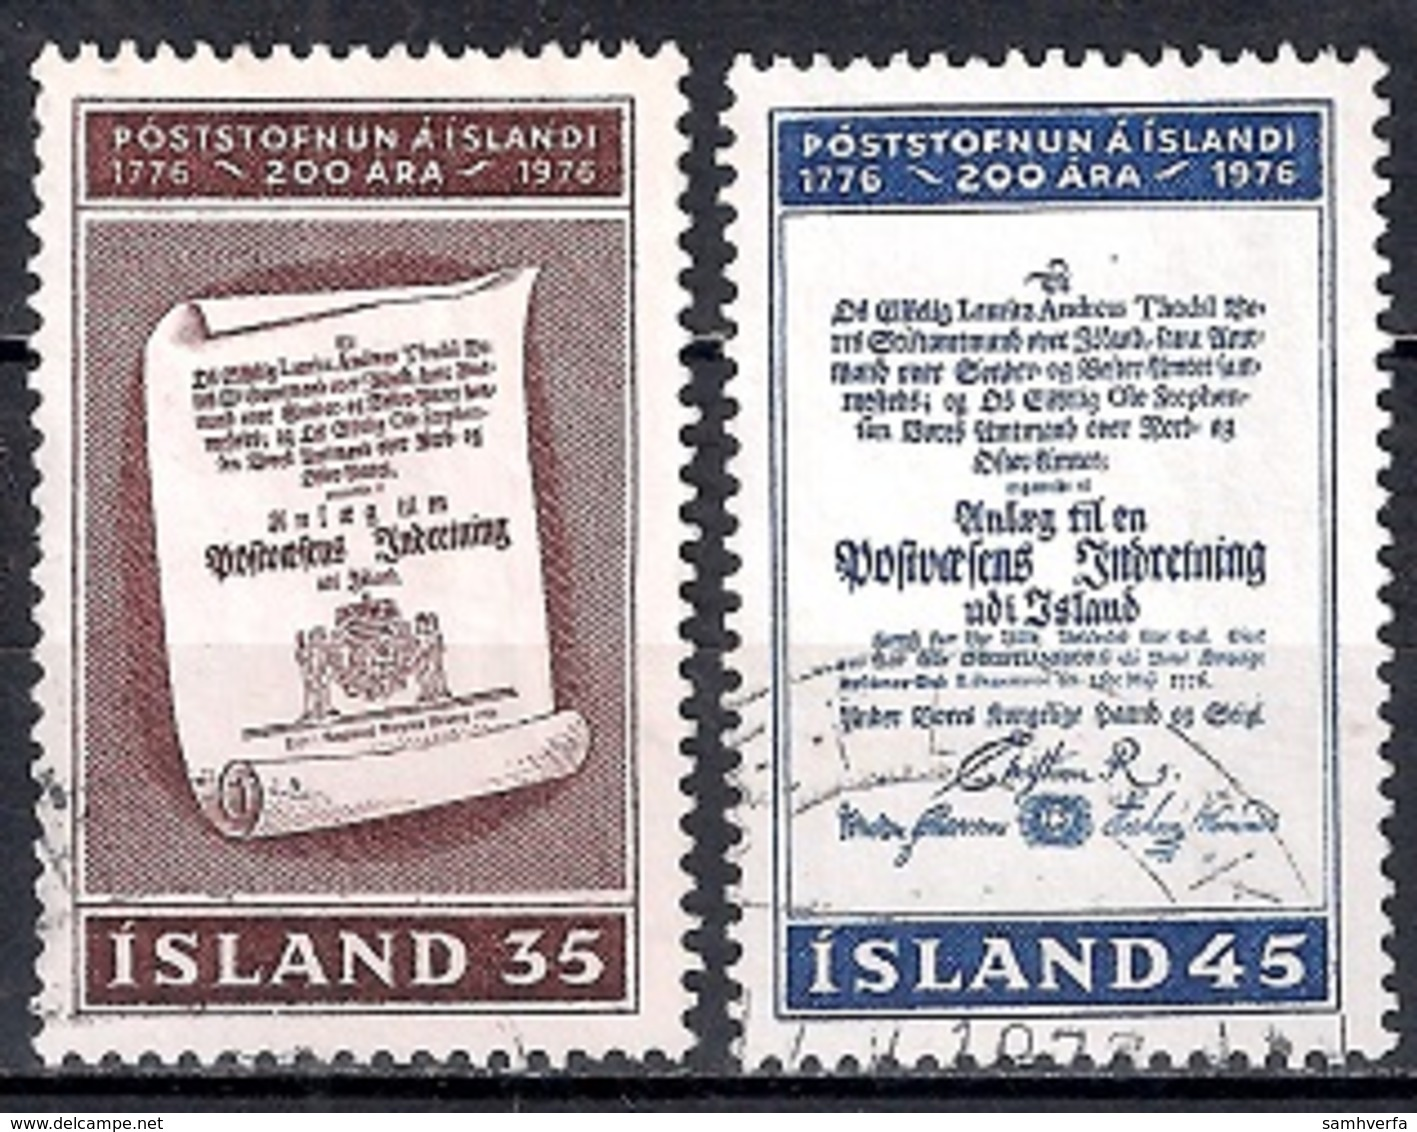 Iceland 1976 - The 200th Anniversary Of The Icelandic Post Service - Gebraucht